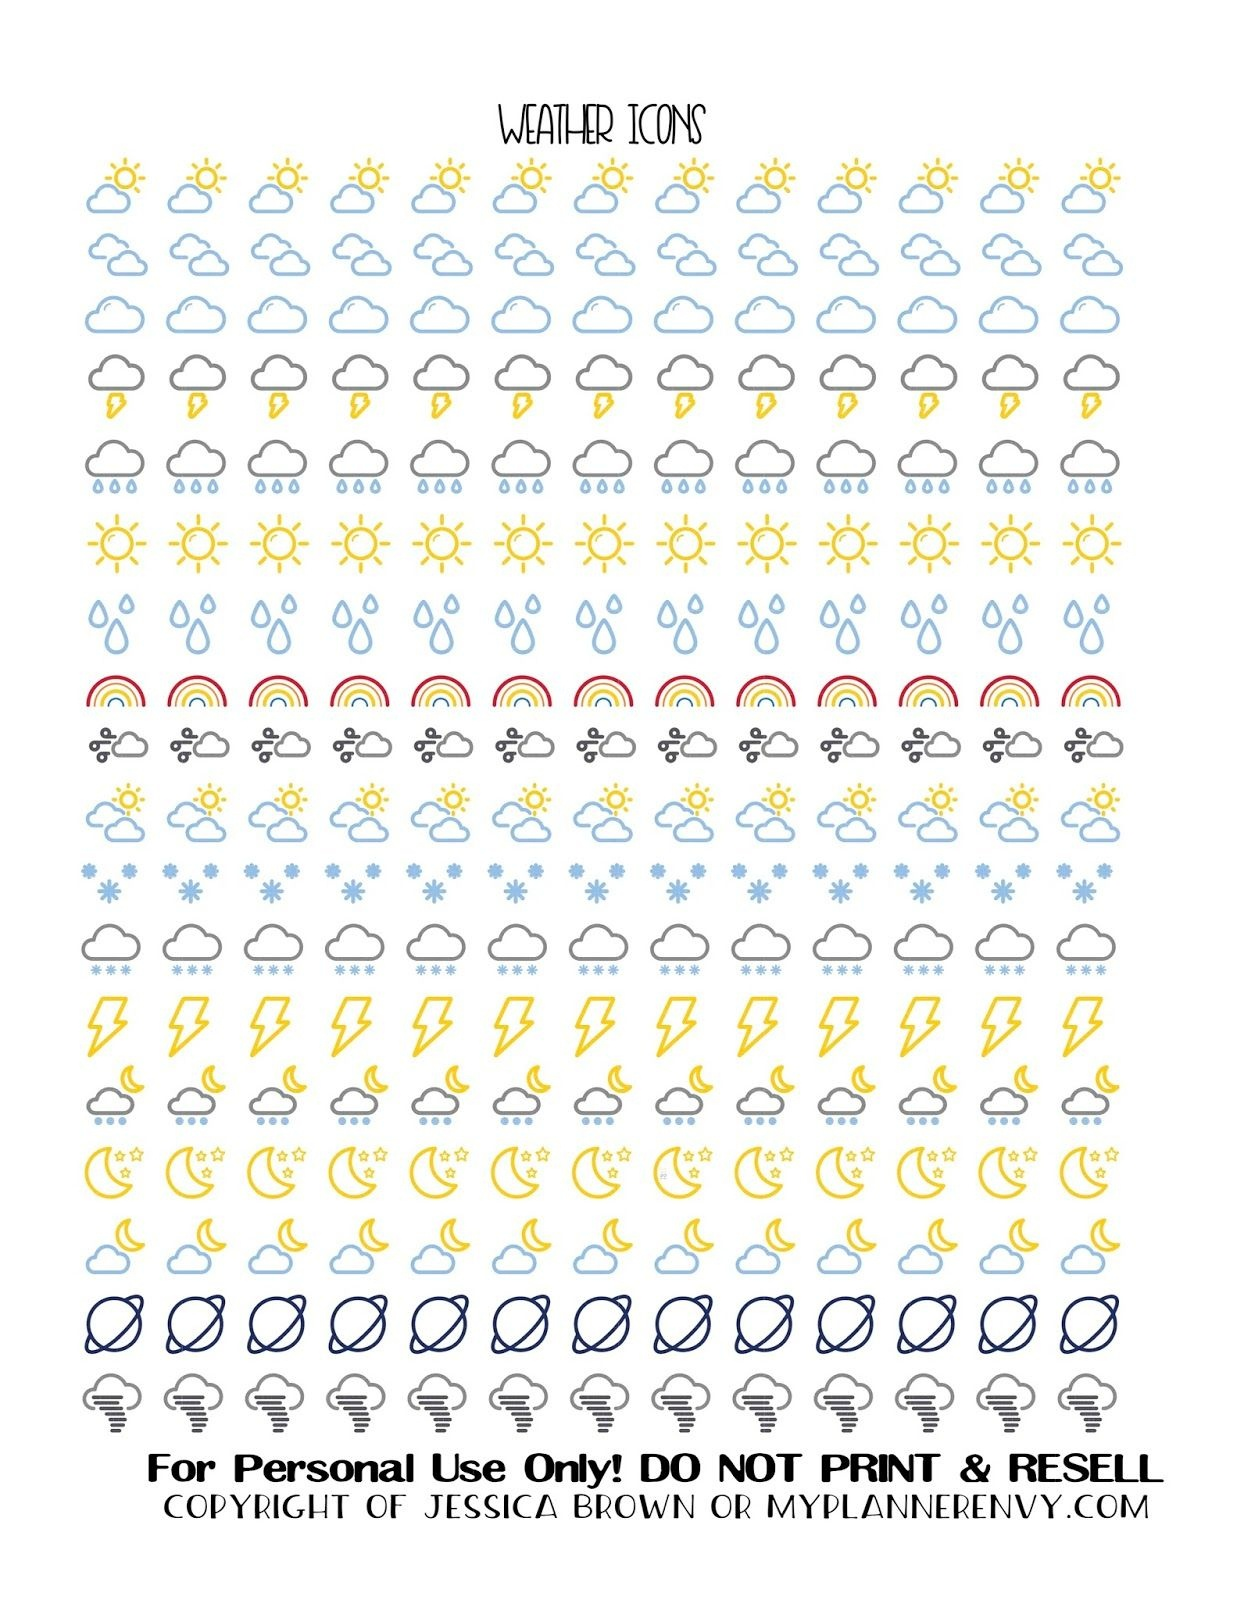 Free Printable Weather Icon Stickers From Myplannerenvy | Mijn - Free Printable Icons